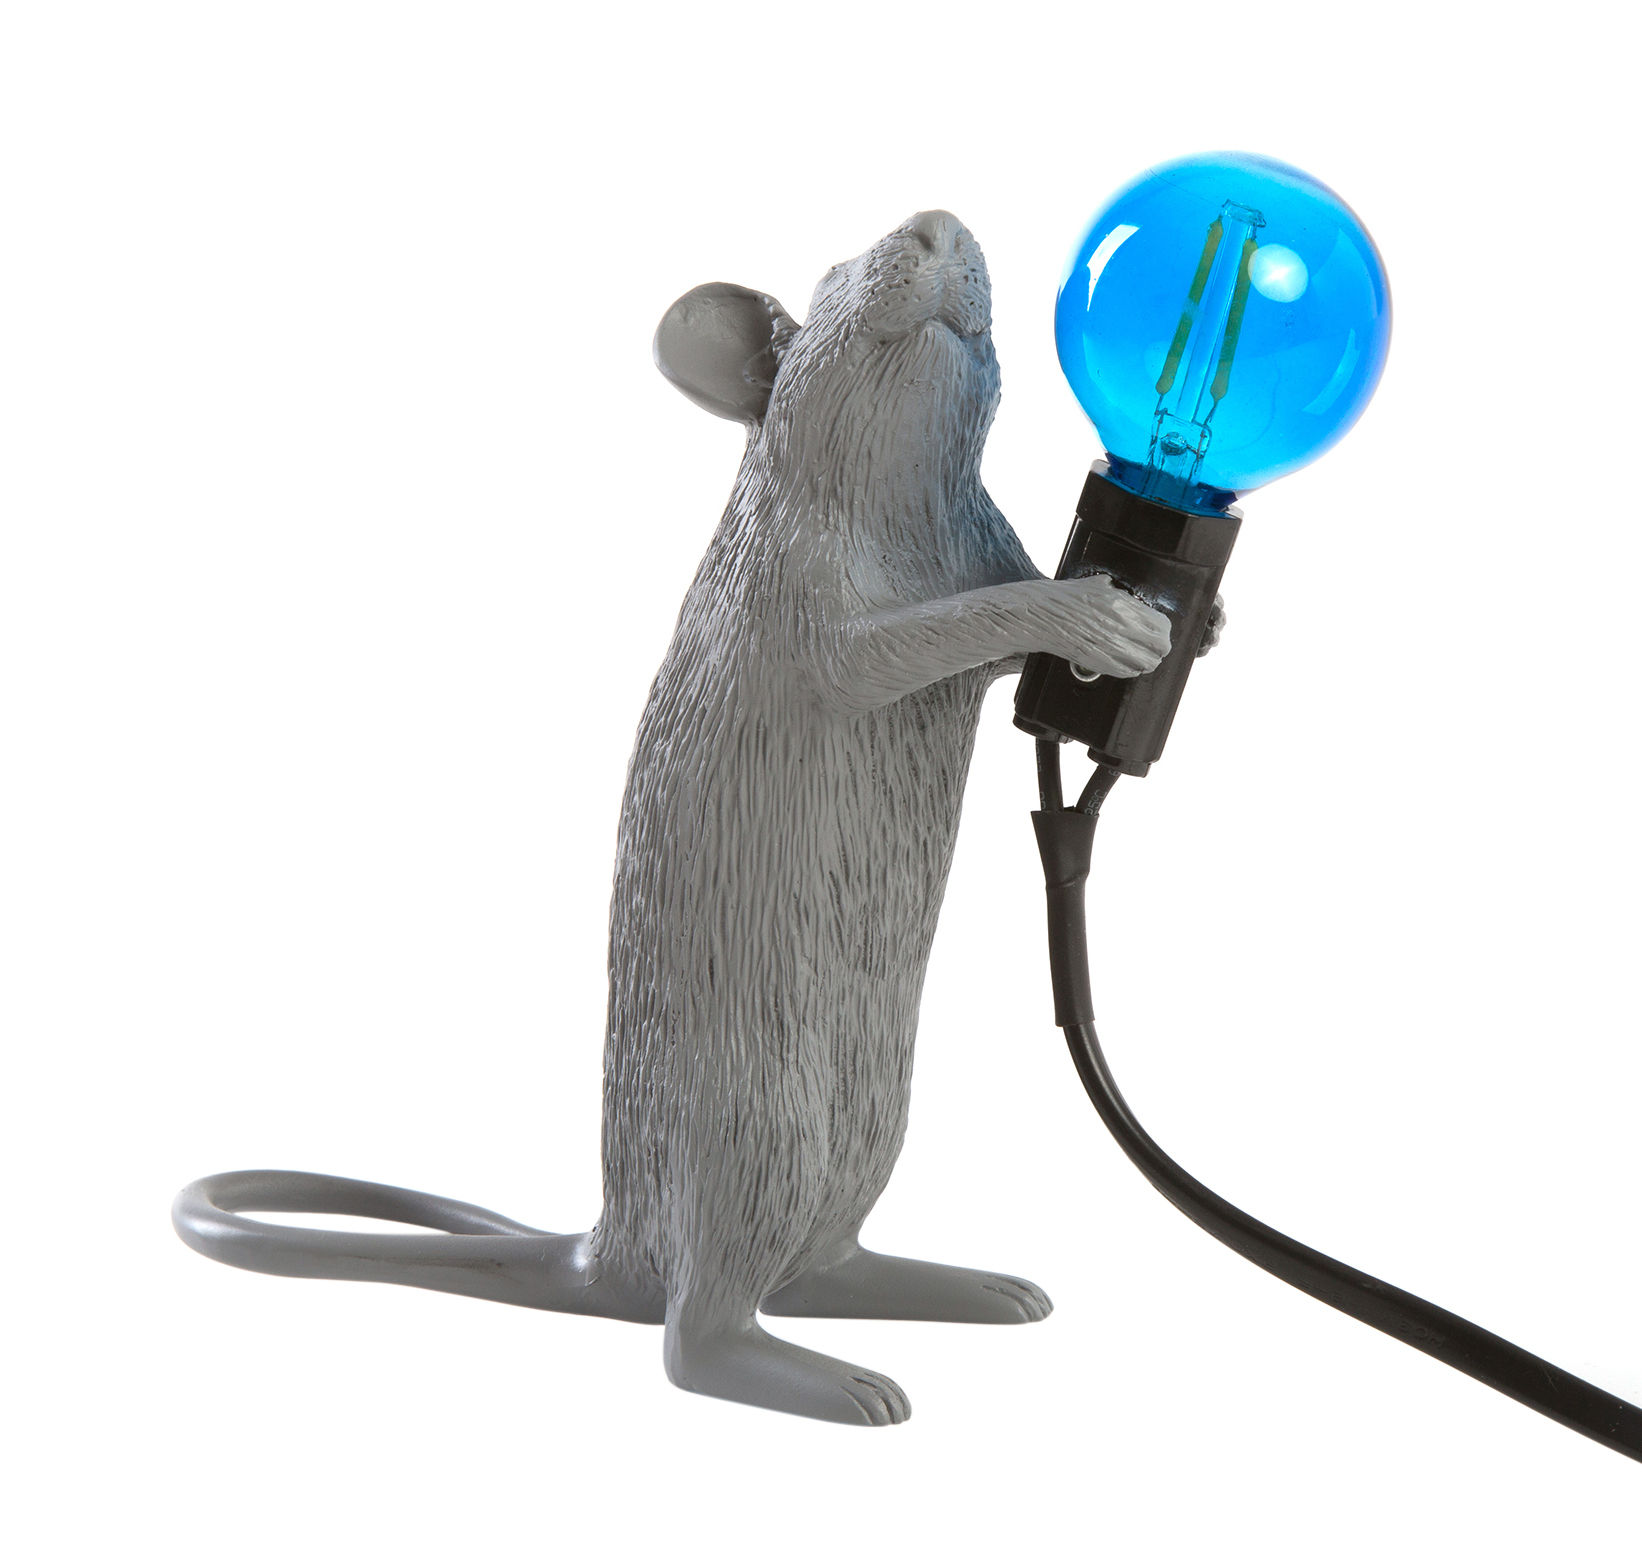 Decoration - Children's Home Accessories - Mouse Standing #1 Table lamp - / Standing mouse by Seletti - Standing mouse / Grey - Resin